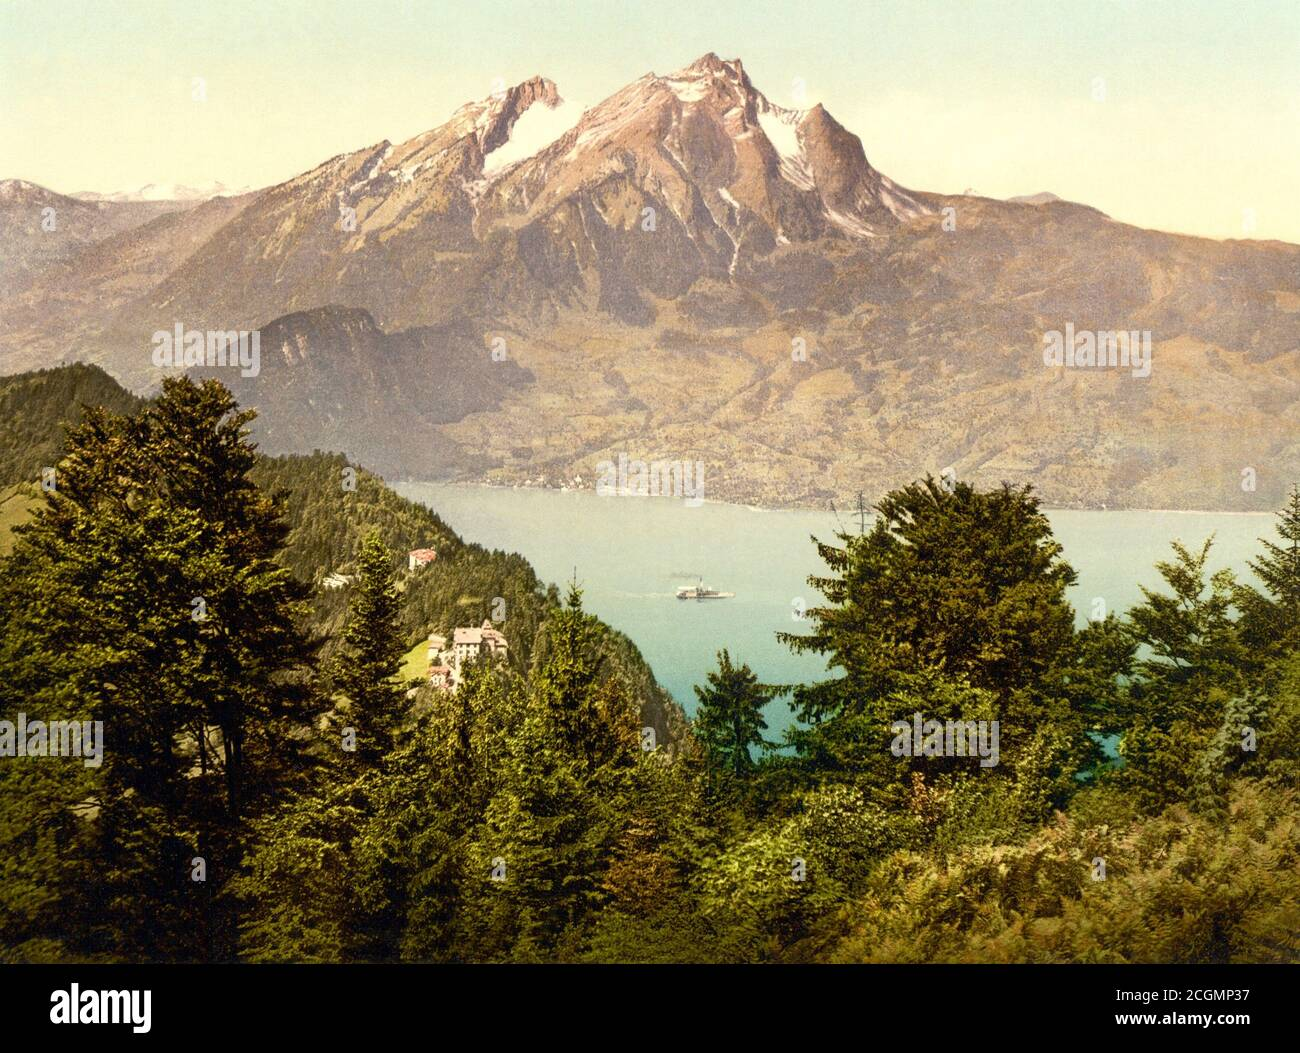 Bürgenstock and Pilatus, Lake Lucerne, Switzerland 1890. Stock Photo